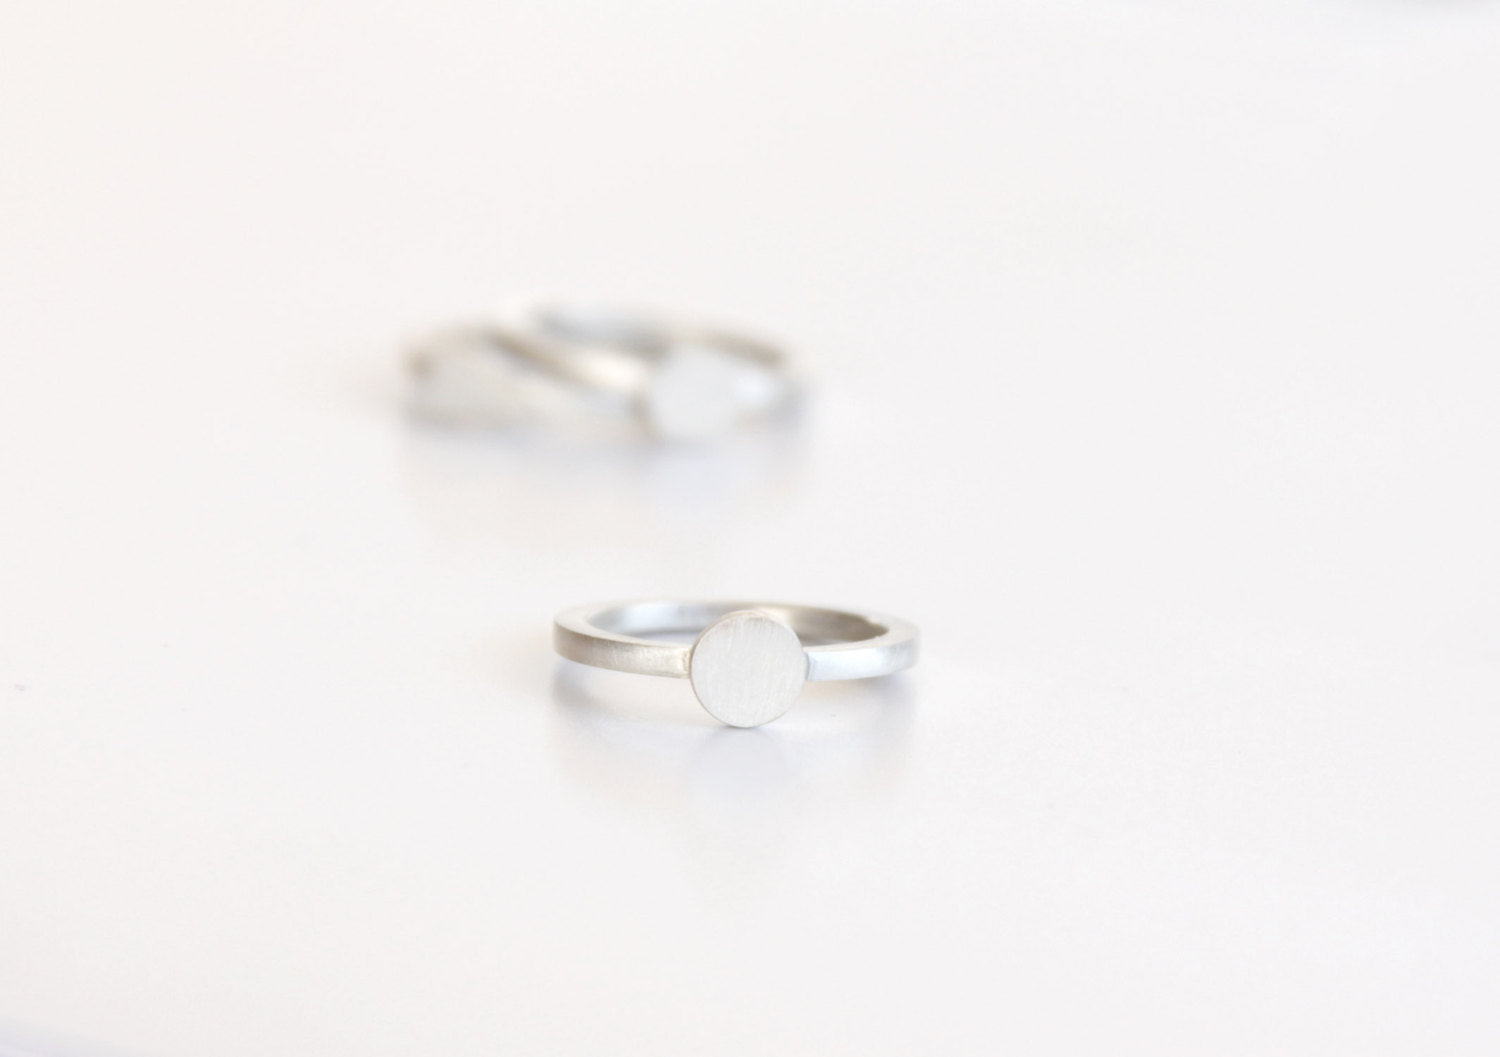 Thin Sterling Silver Geometric Stacking Rings,Set Of 3